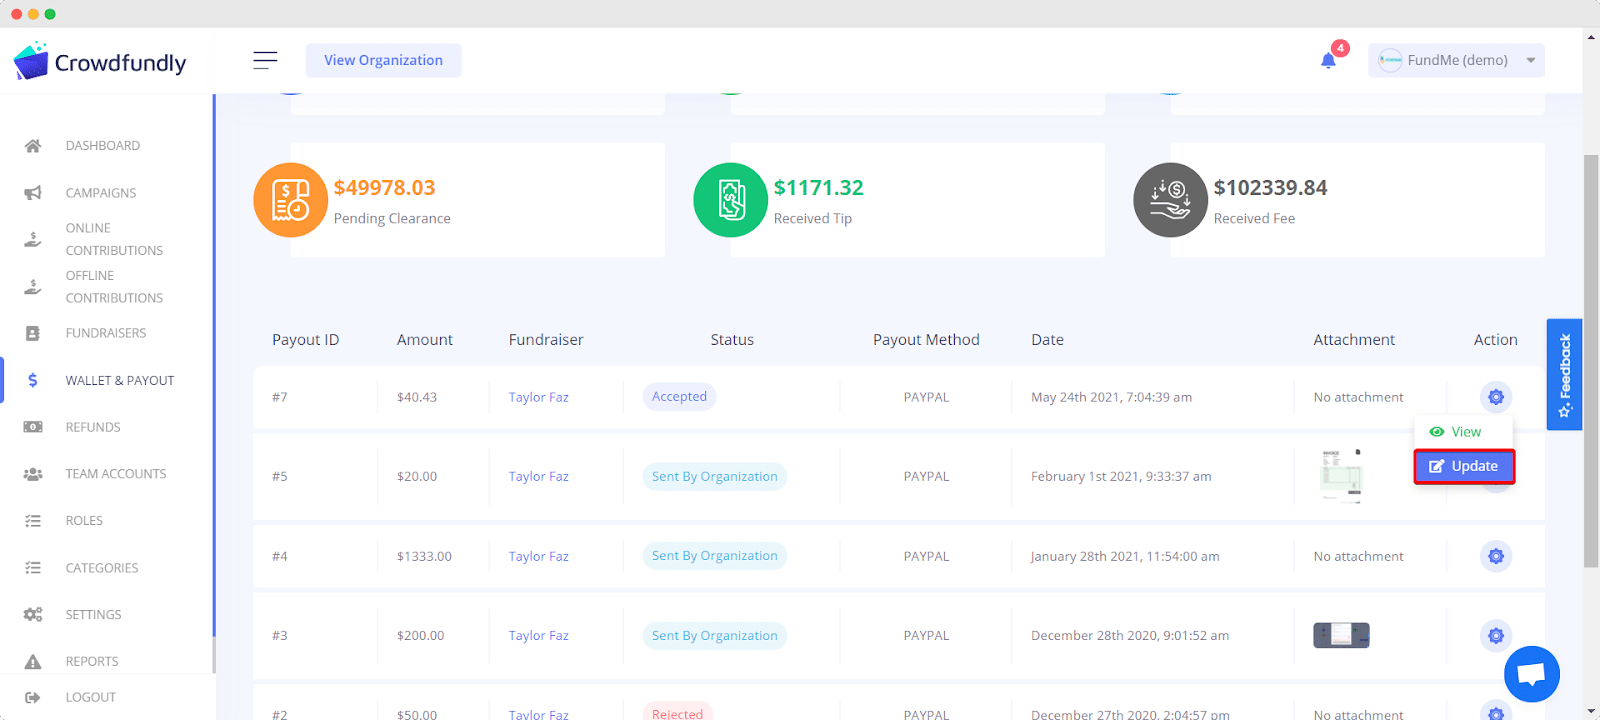 accept withdrawal requests